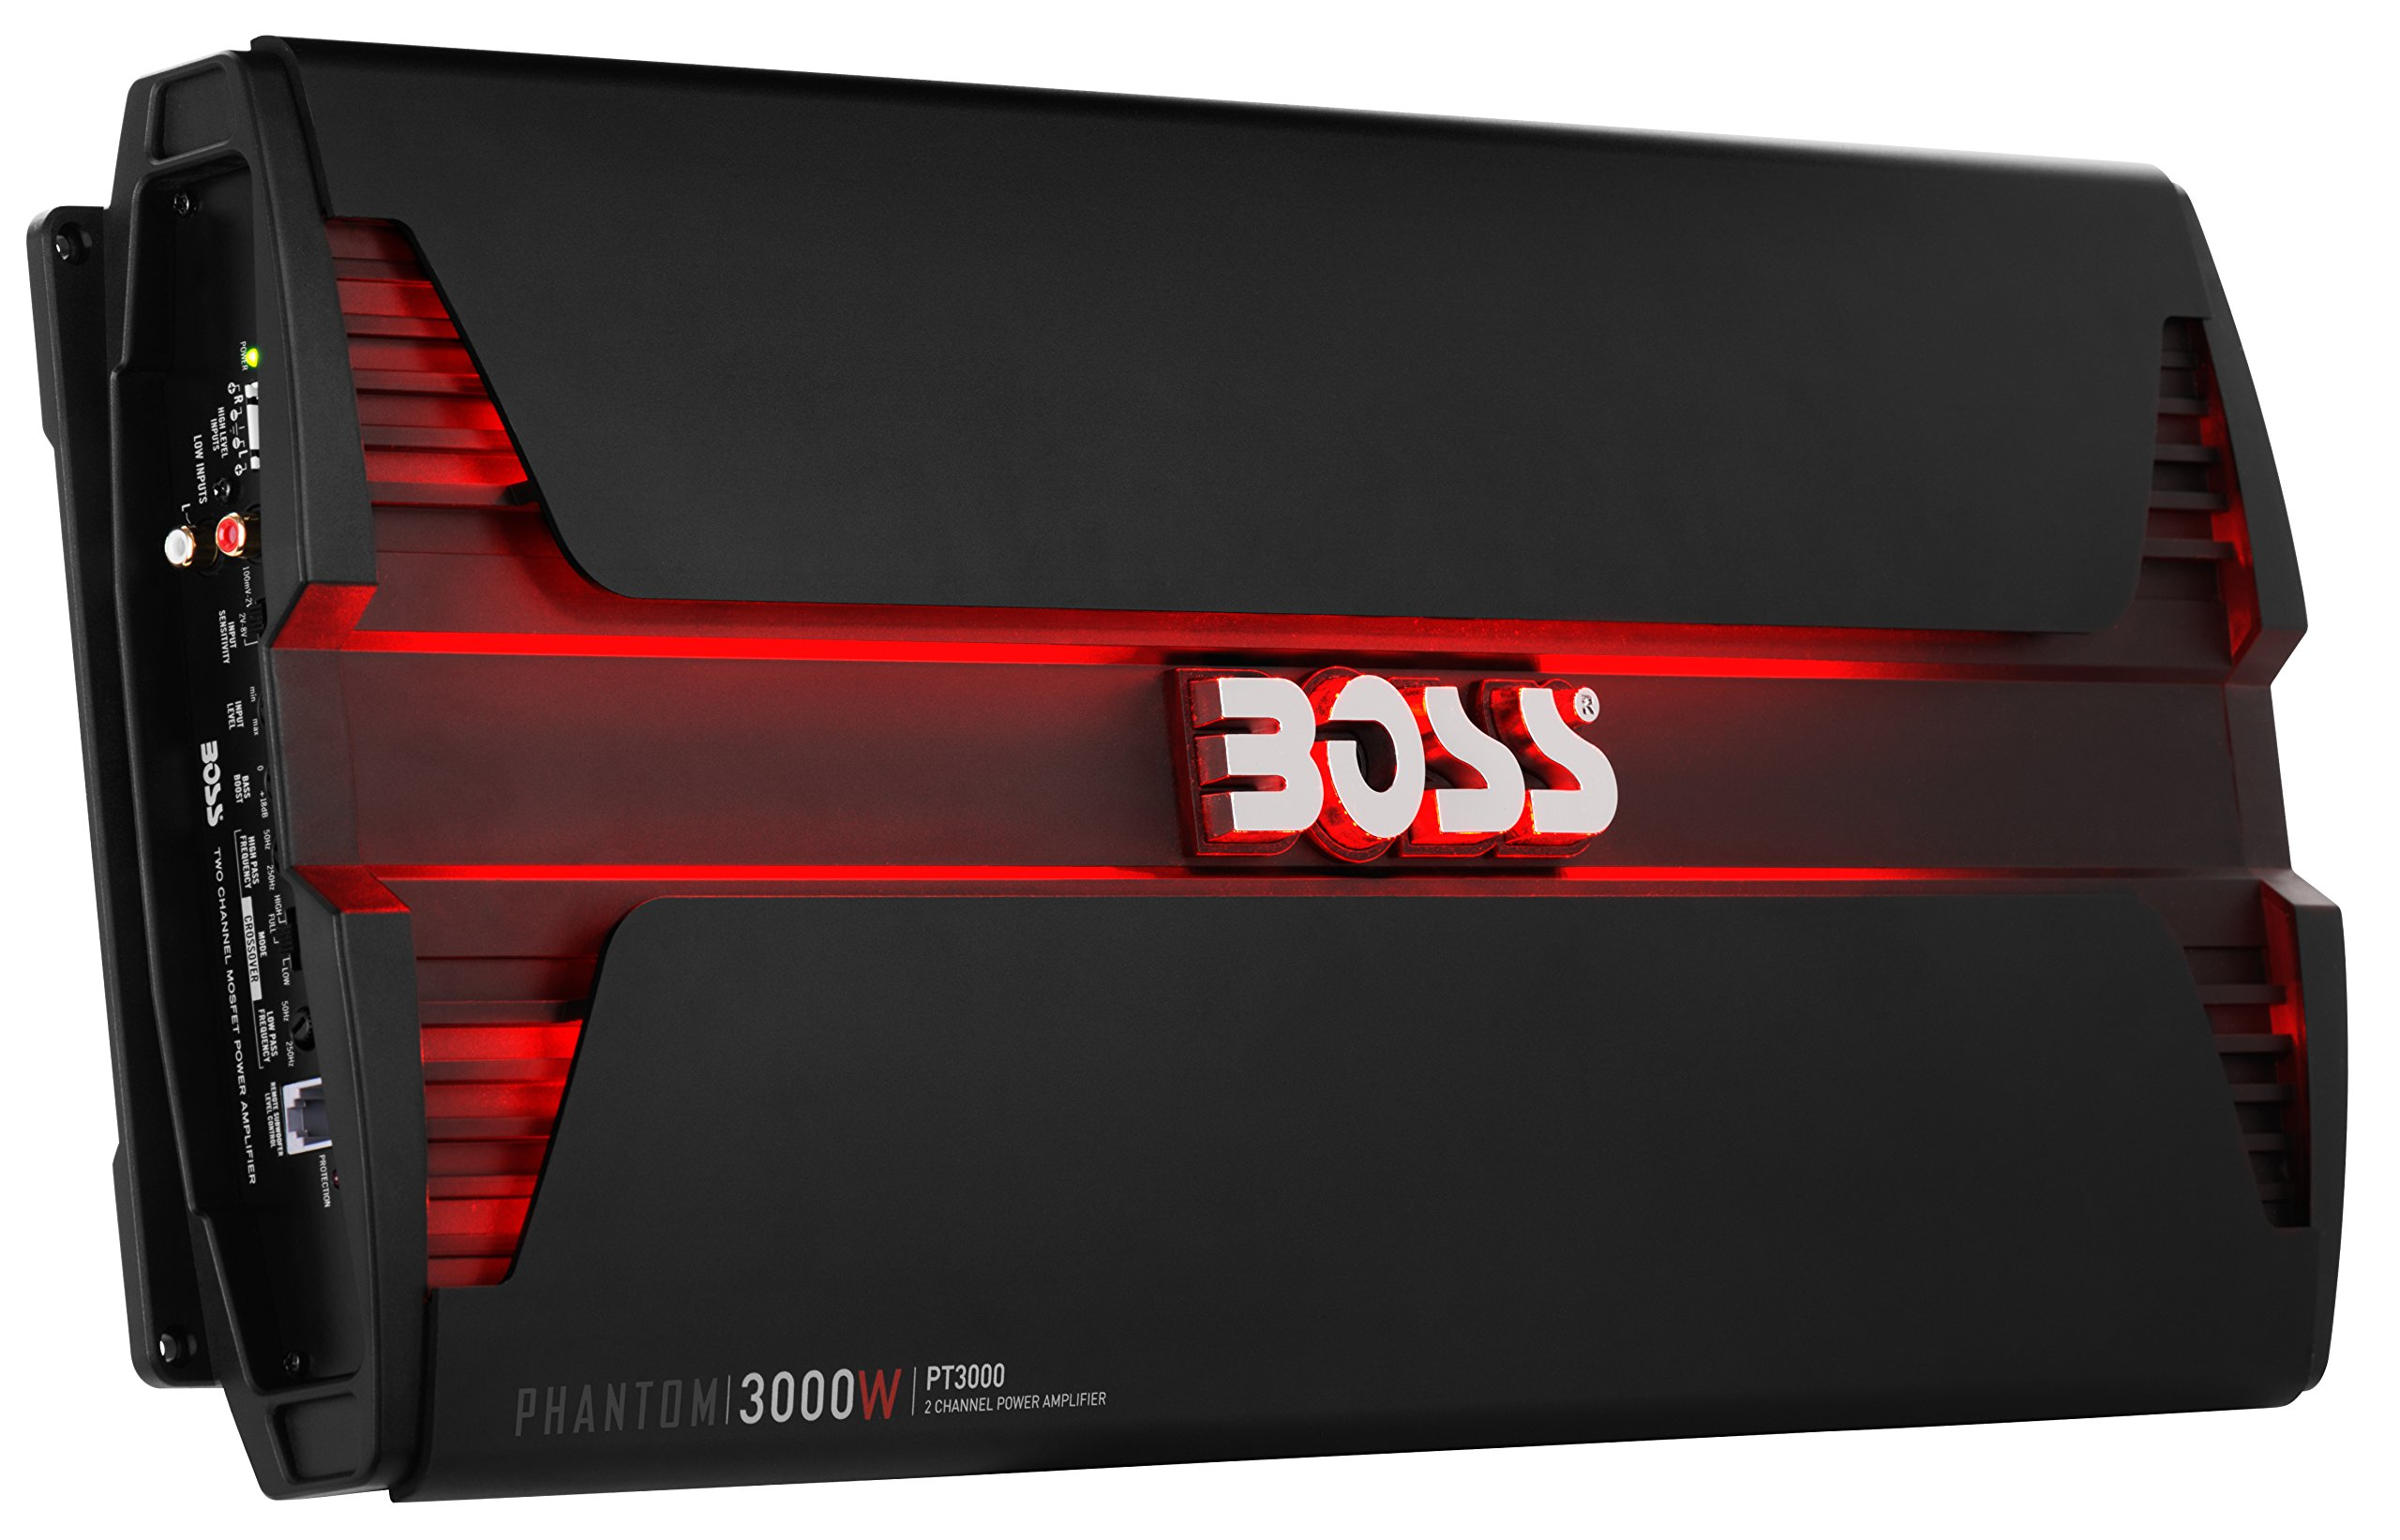 BOSS Audio PT3000 Phantom 3000 Watt, 2 Channel, 2/4 Ohm Stable Class A/B, Full Range, Bridgeable, MOSFET Car Amplifier with Remote Subwoofer Control